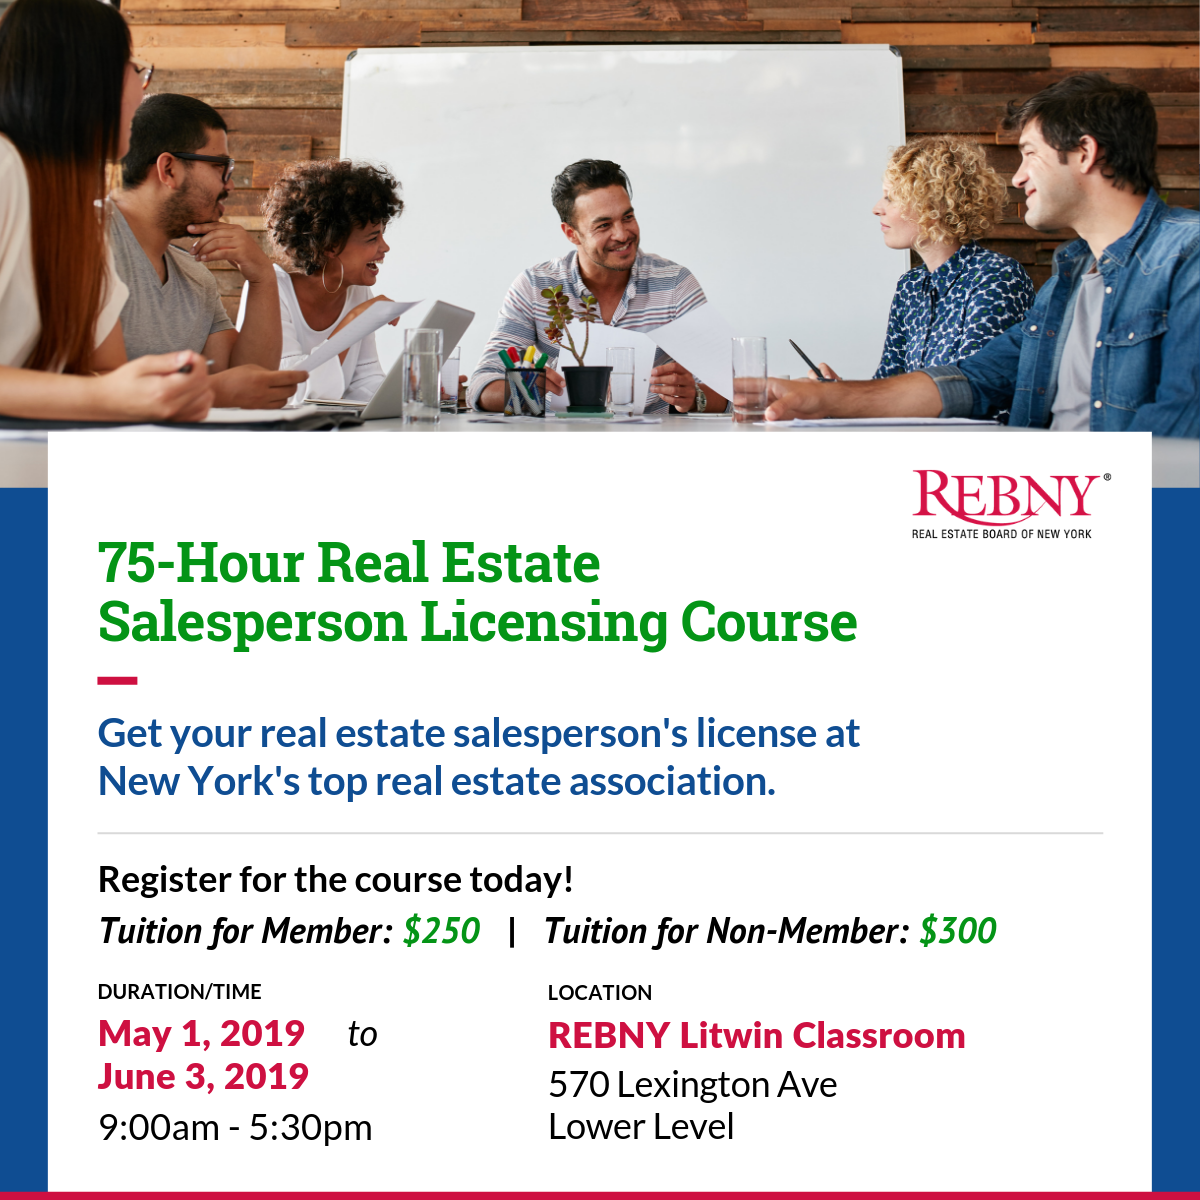 75-Hour Real Estate Salesperson Licensing Course